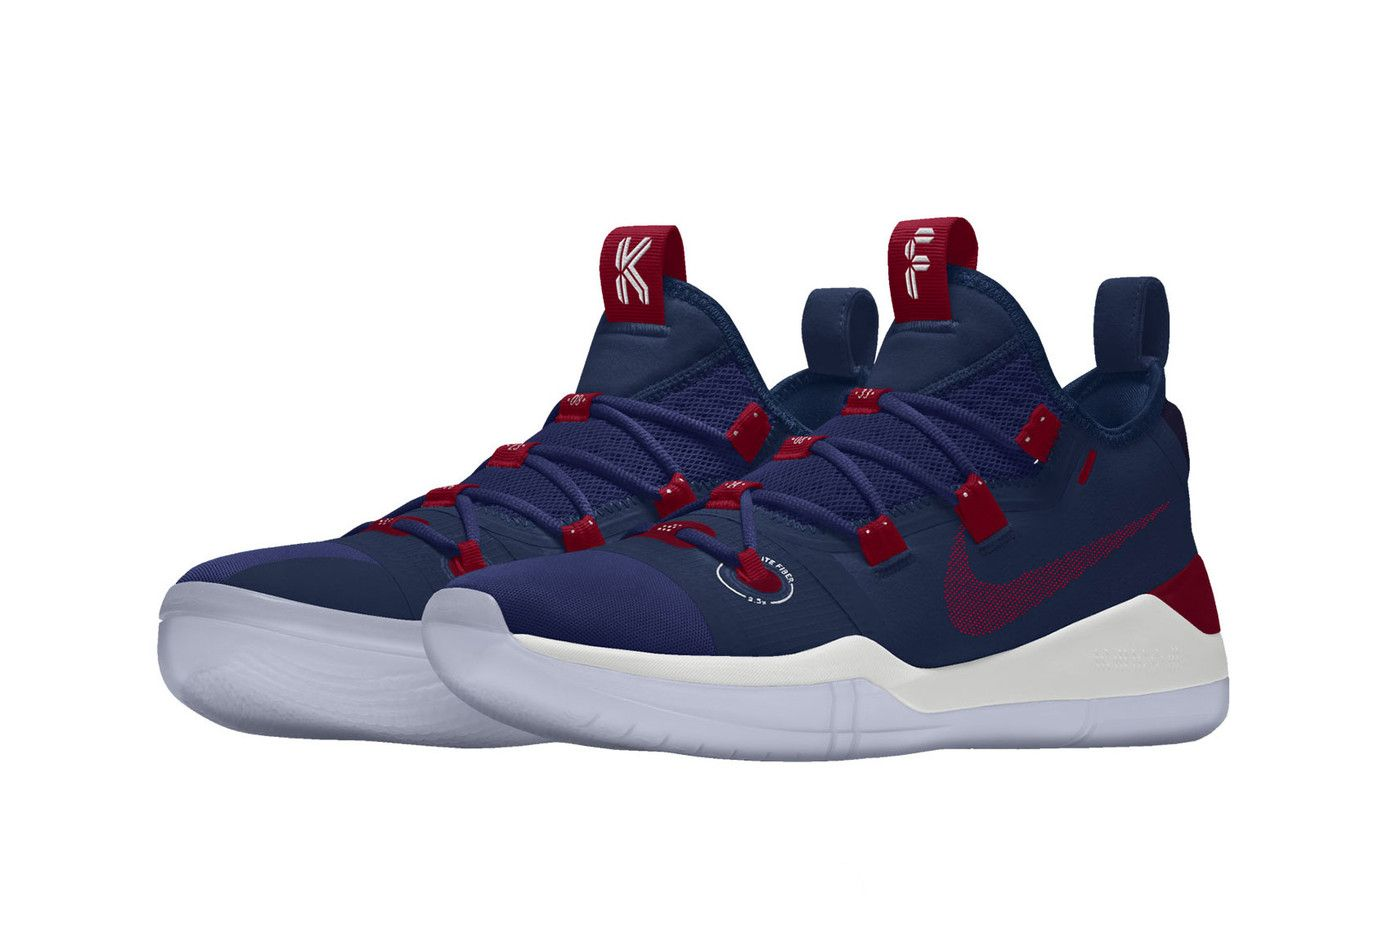 low cost b48c1 ee1a3 NIKEiD Adds Player-Designed Colorways to Its 2018-19 NBA Roster ...